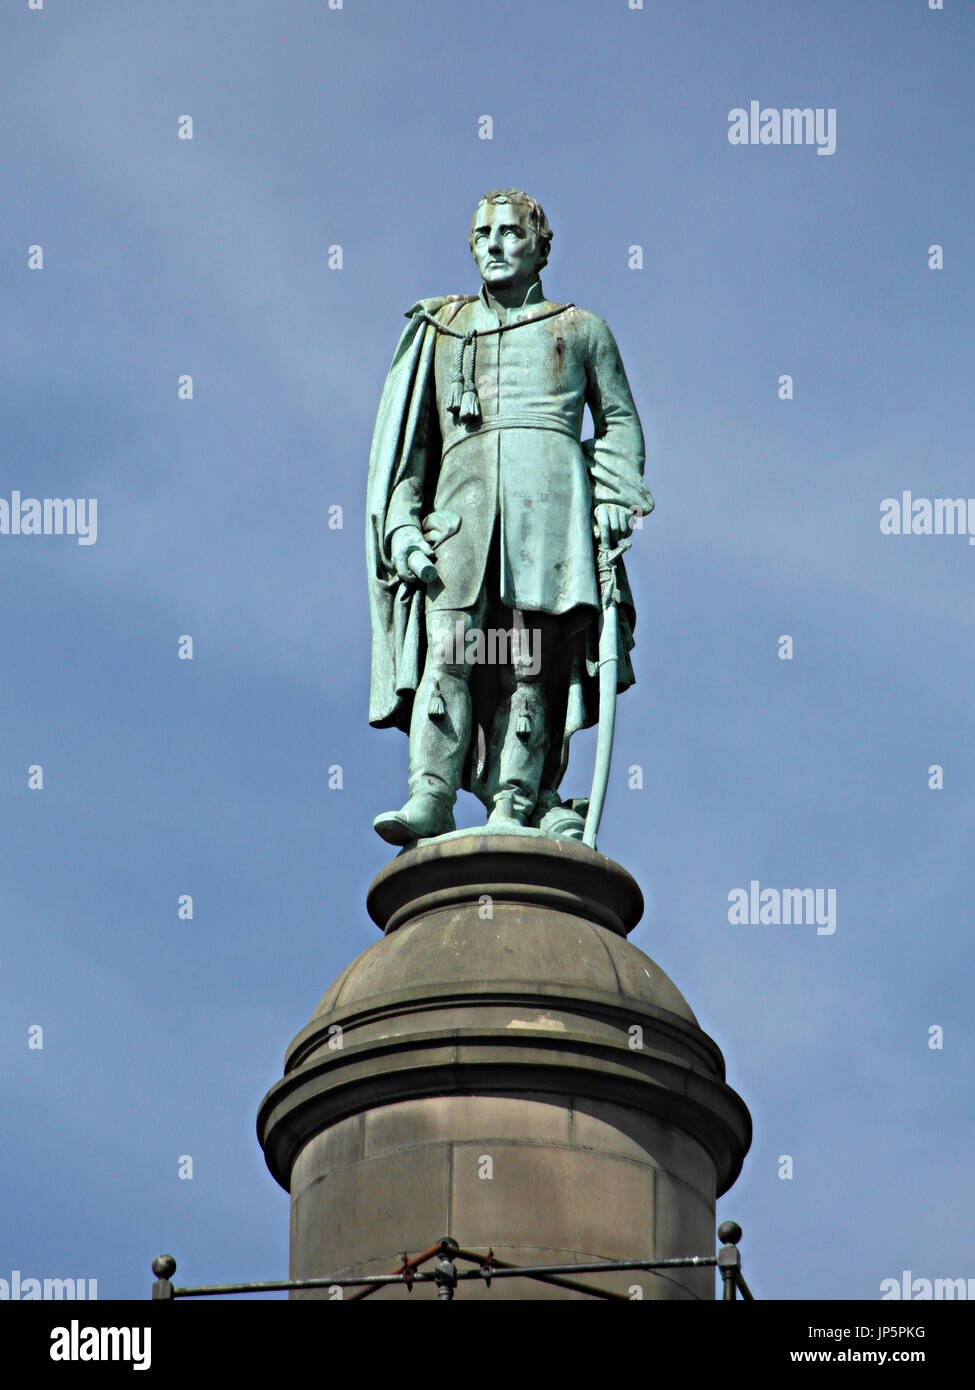 Statue of the Duke of Wellington, supposedly cast from cannon captured at the Battle of Waterloo, 18 June 1815. Located at Wm Brown Street, Liverpool. - Stock Image